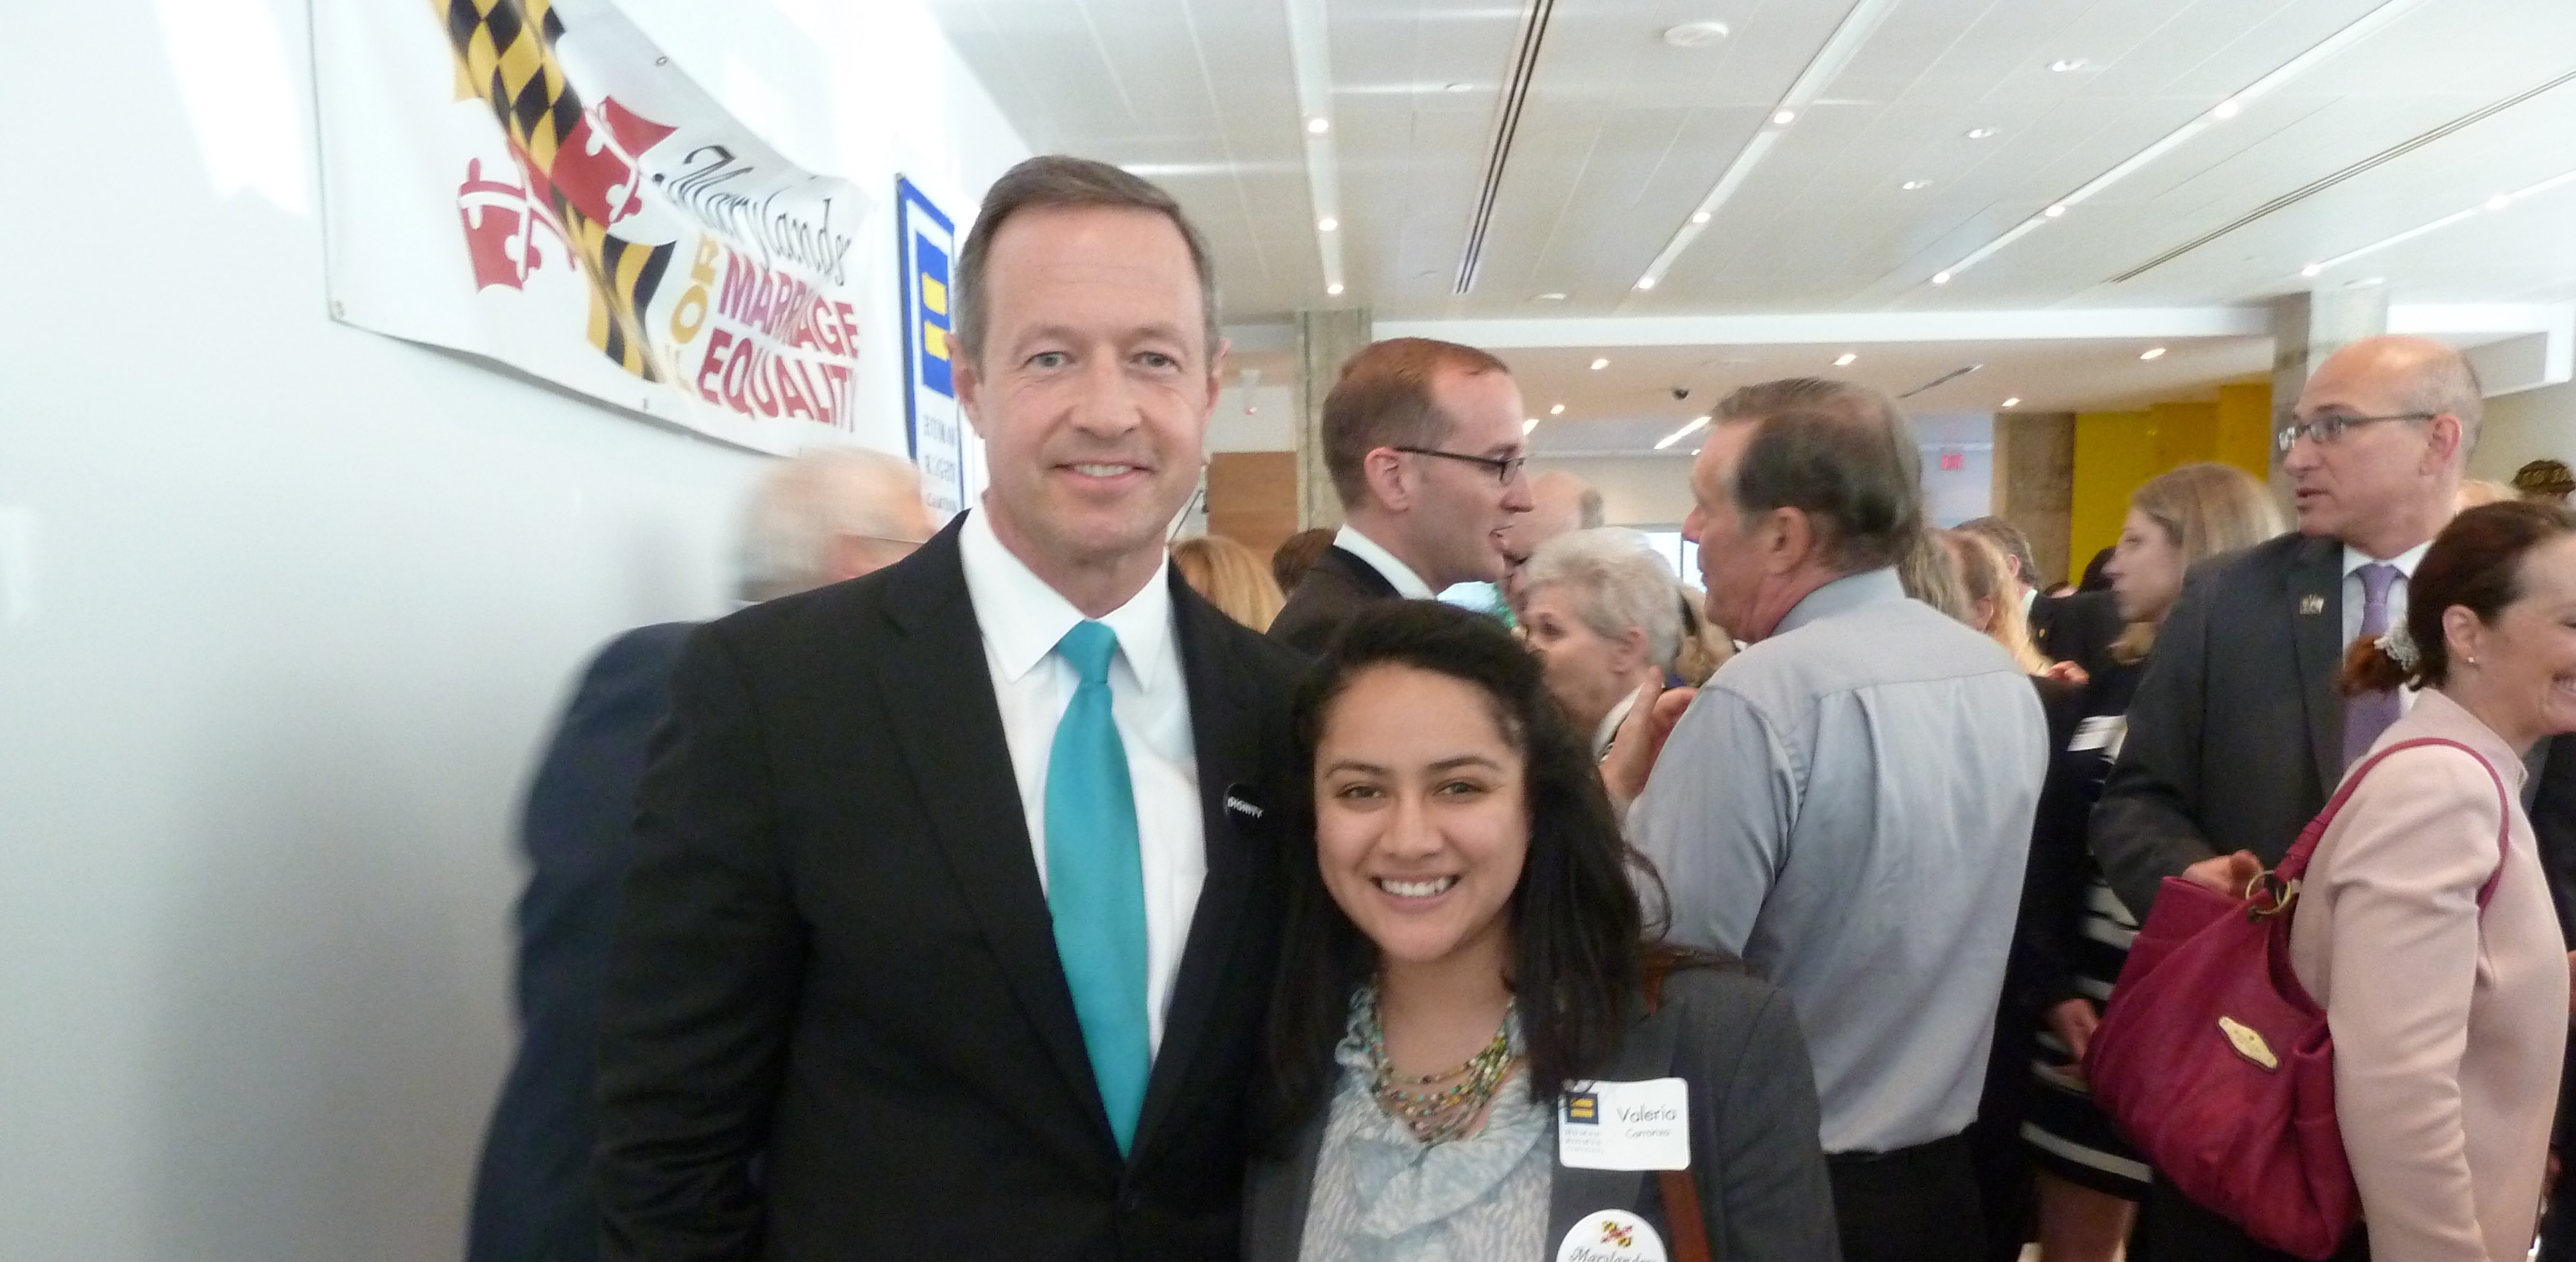 Governor O'Malley and MCYD member Valeria Carranza at HRC Reception for Marriage Equality